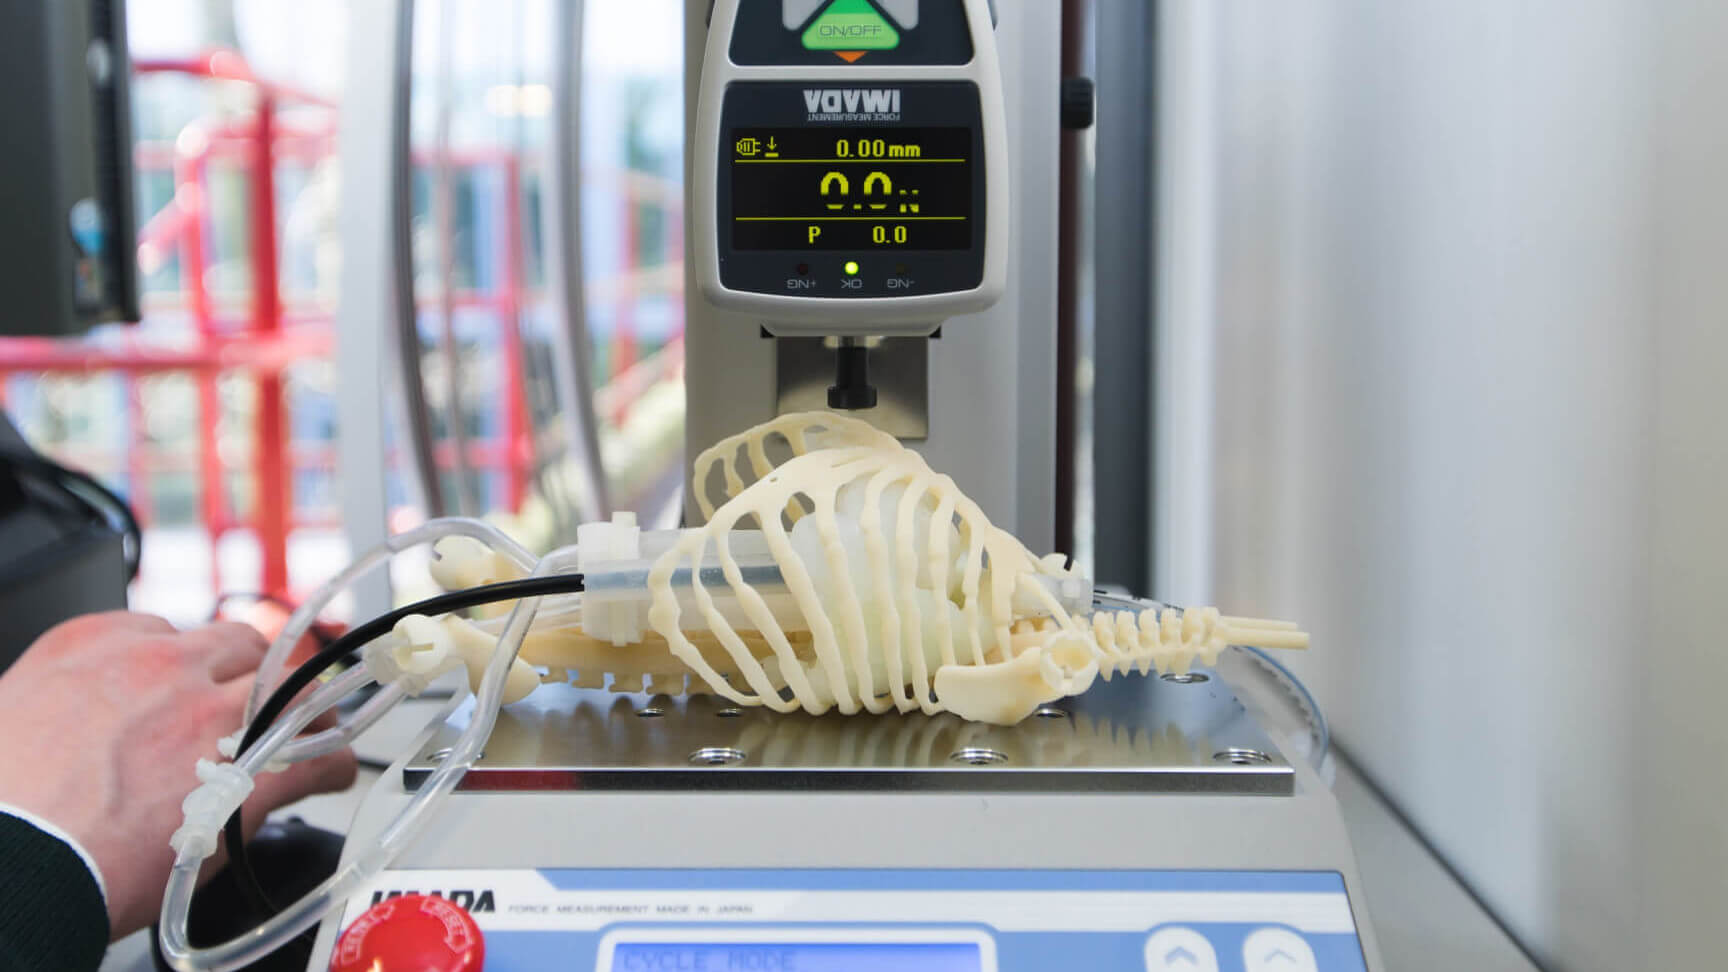 3D Printed Neonatal Manikins with Simulated Organs Improve Surgical Success | All3DP